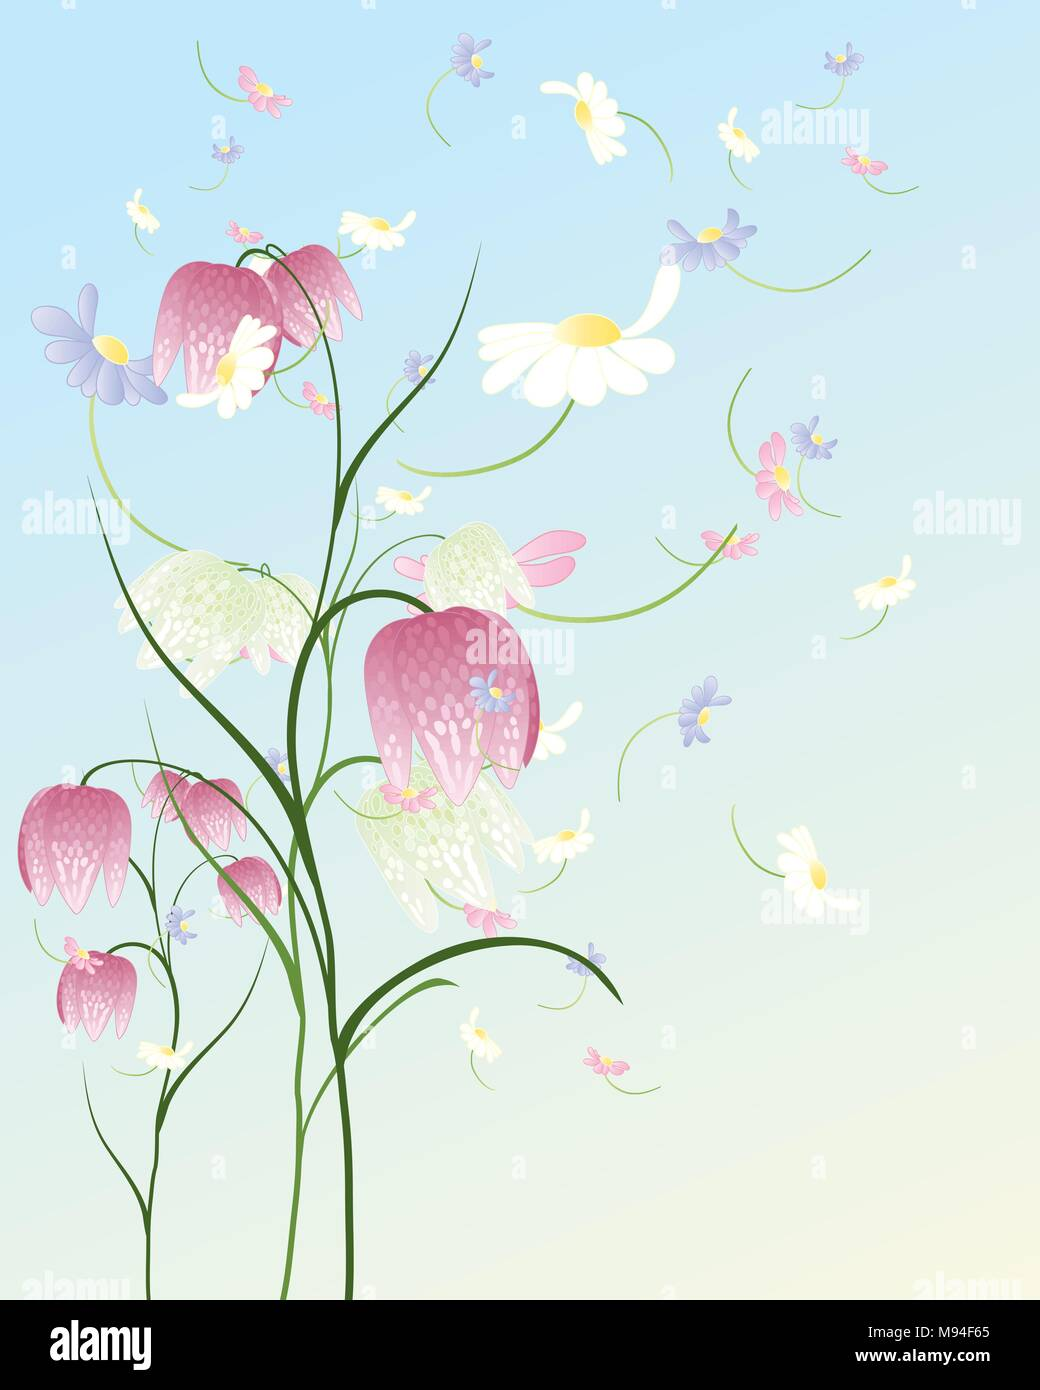 An Illustration Of A Pastel Color Spring Flower Background With